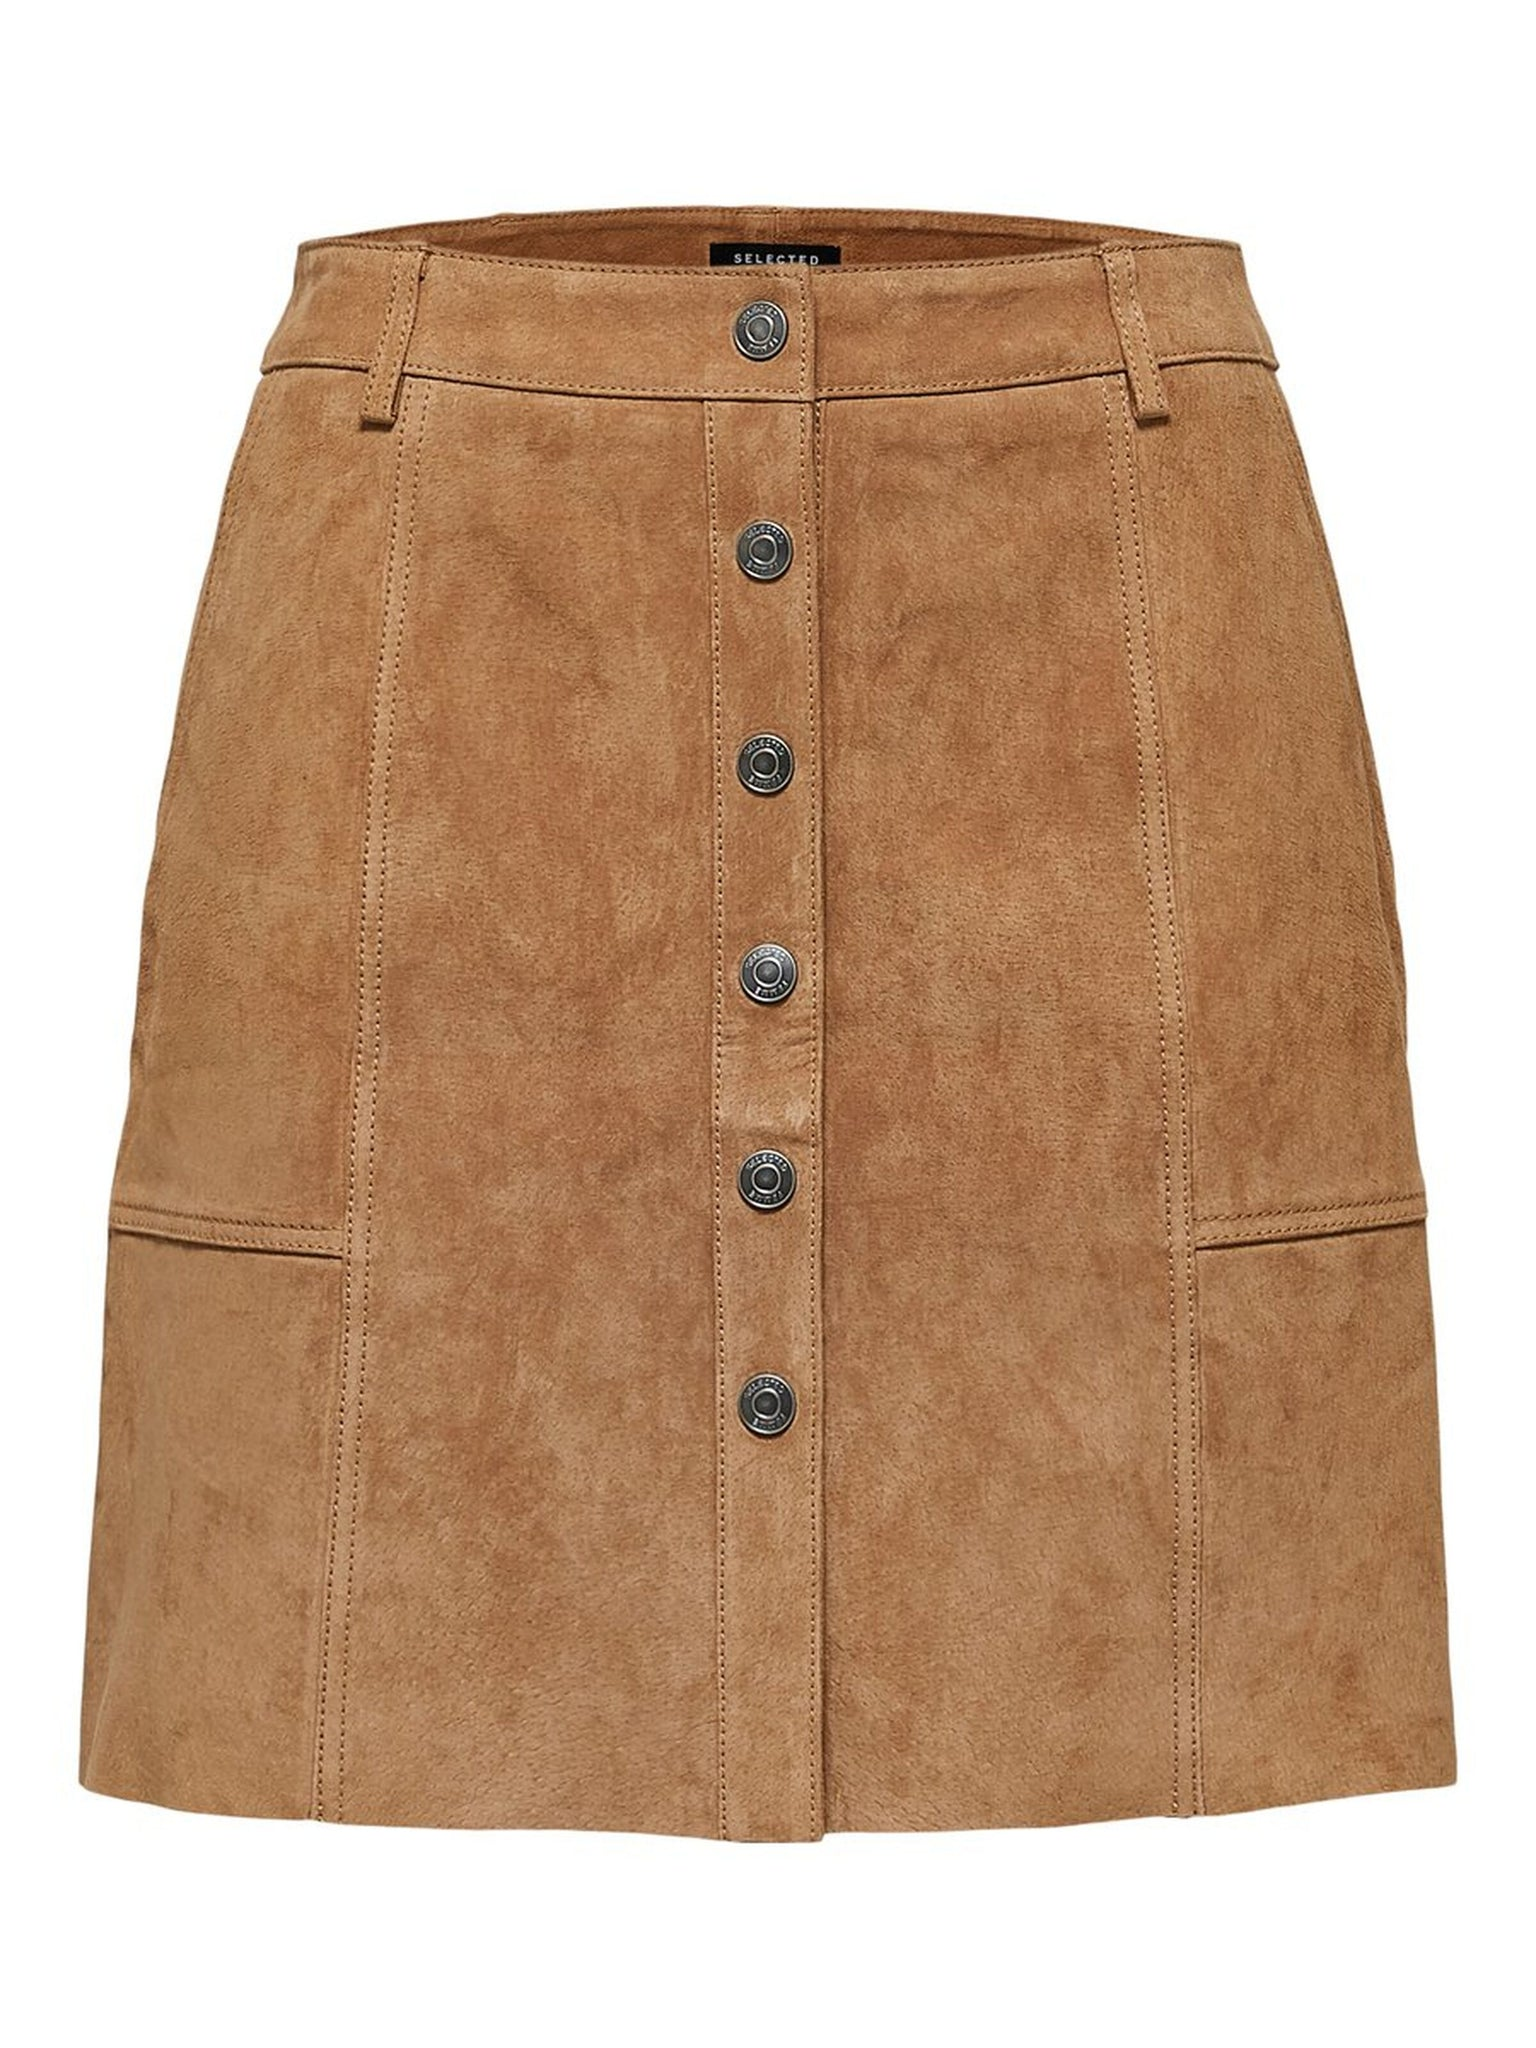 Suede Leather Skirt